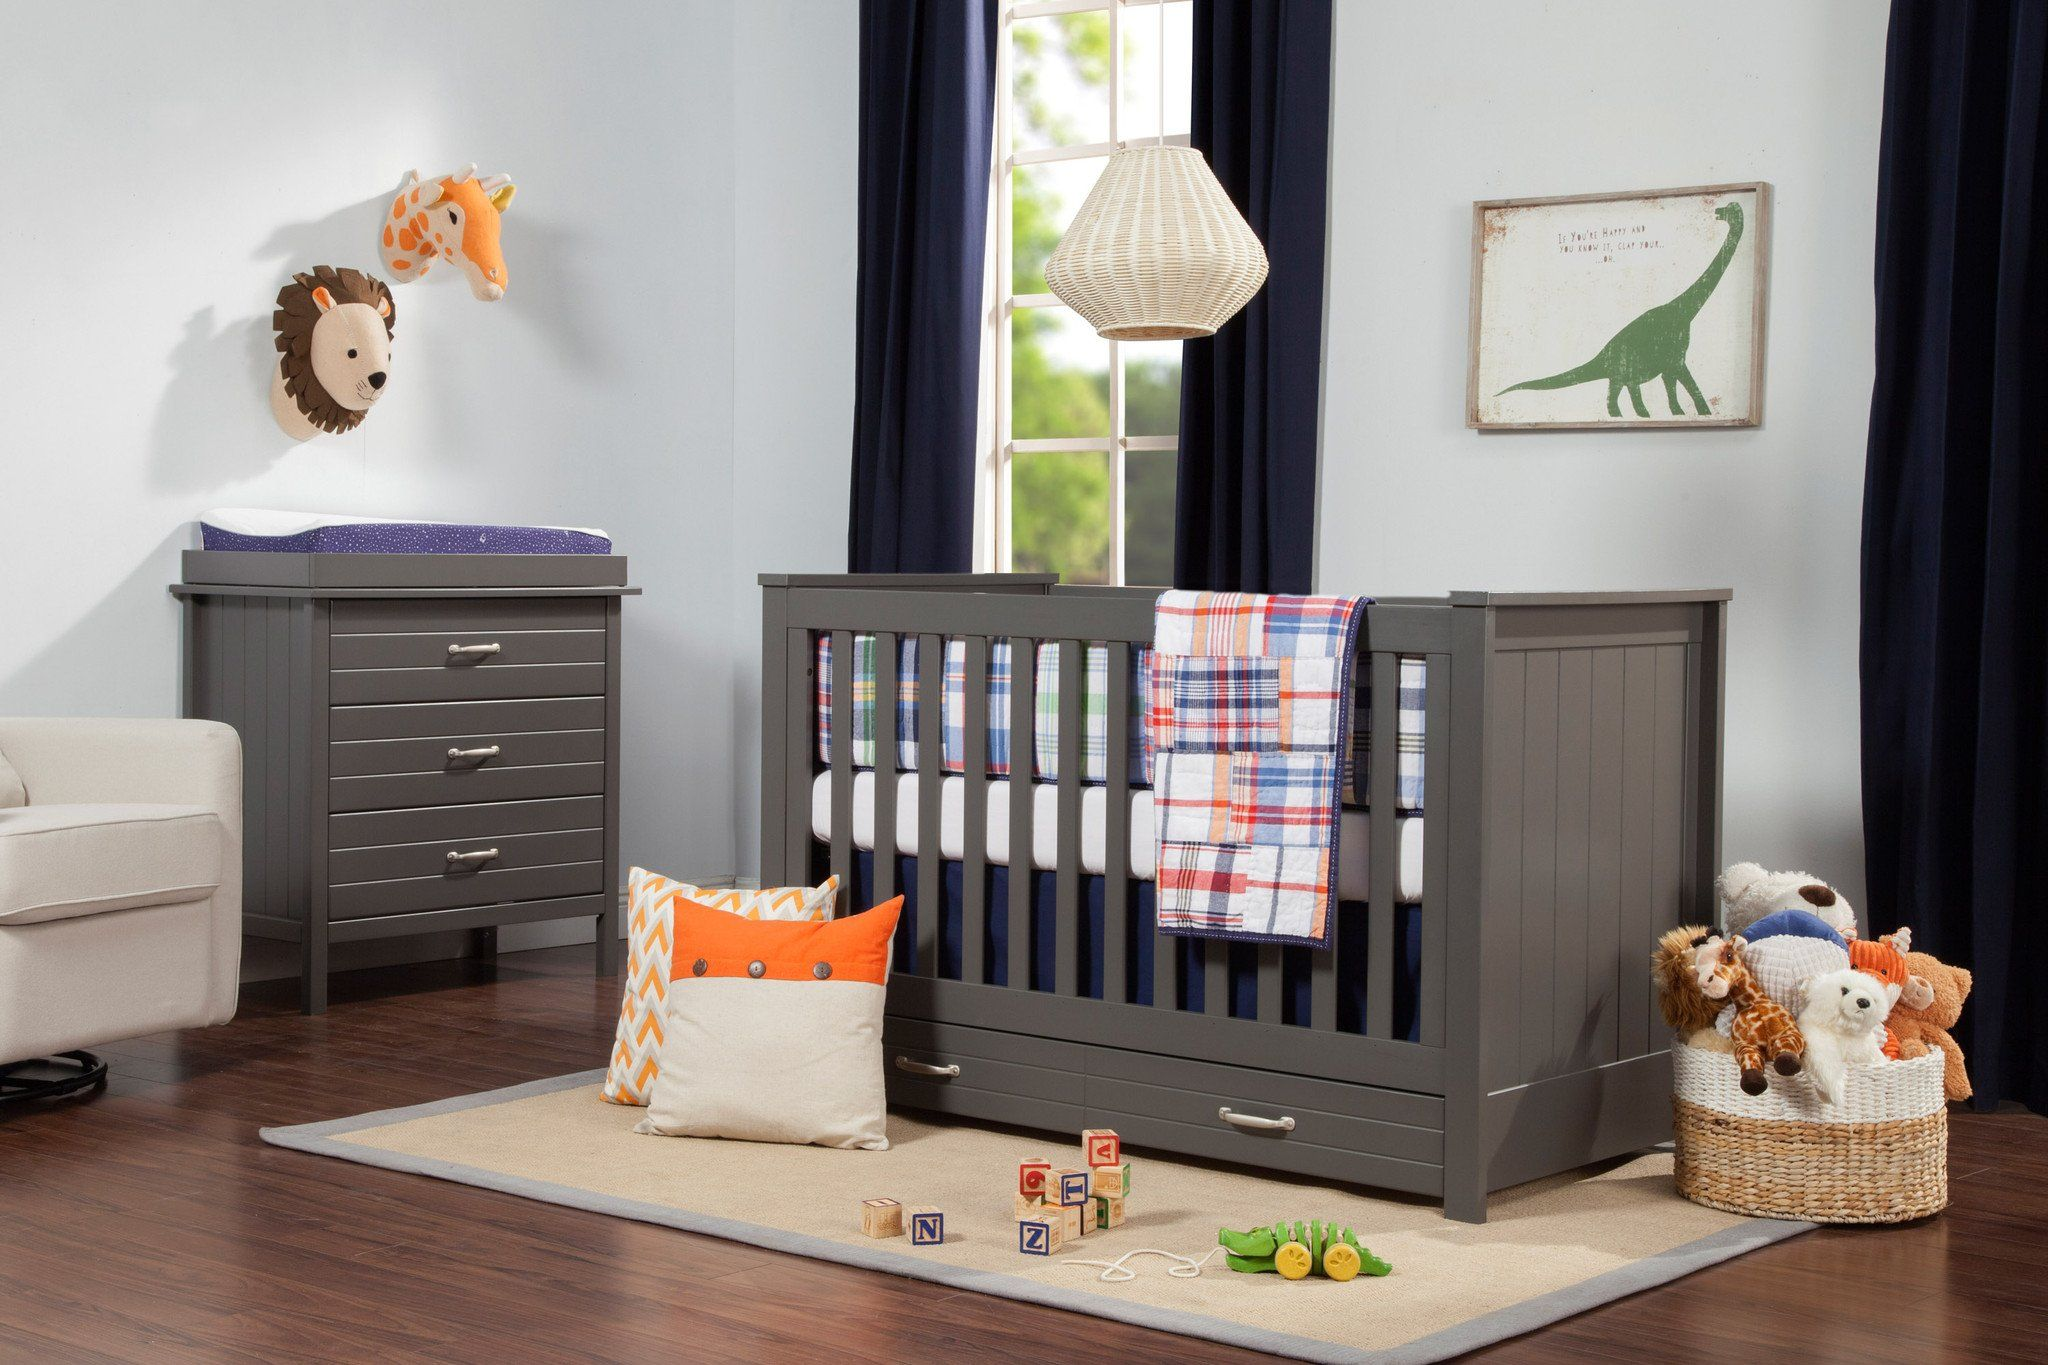 Asher 3 In 1 Convertible Crib With Toddler Bed Conversion Kit